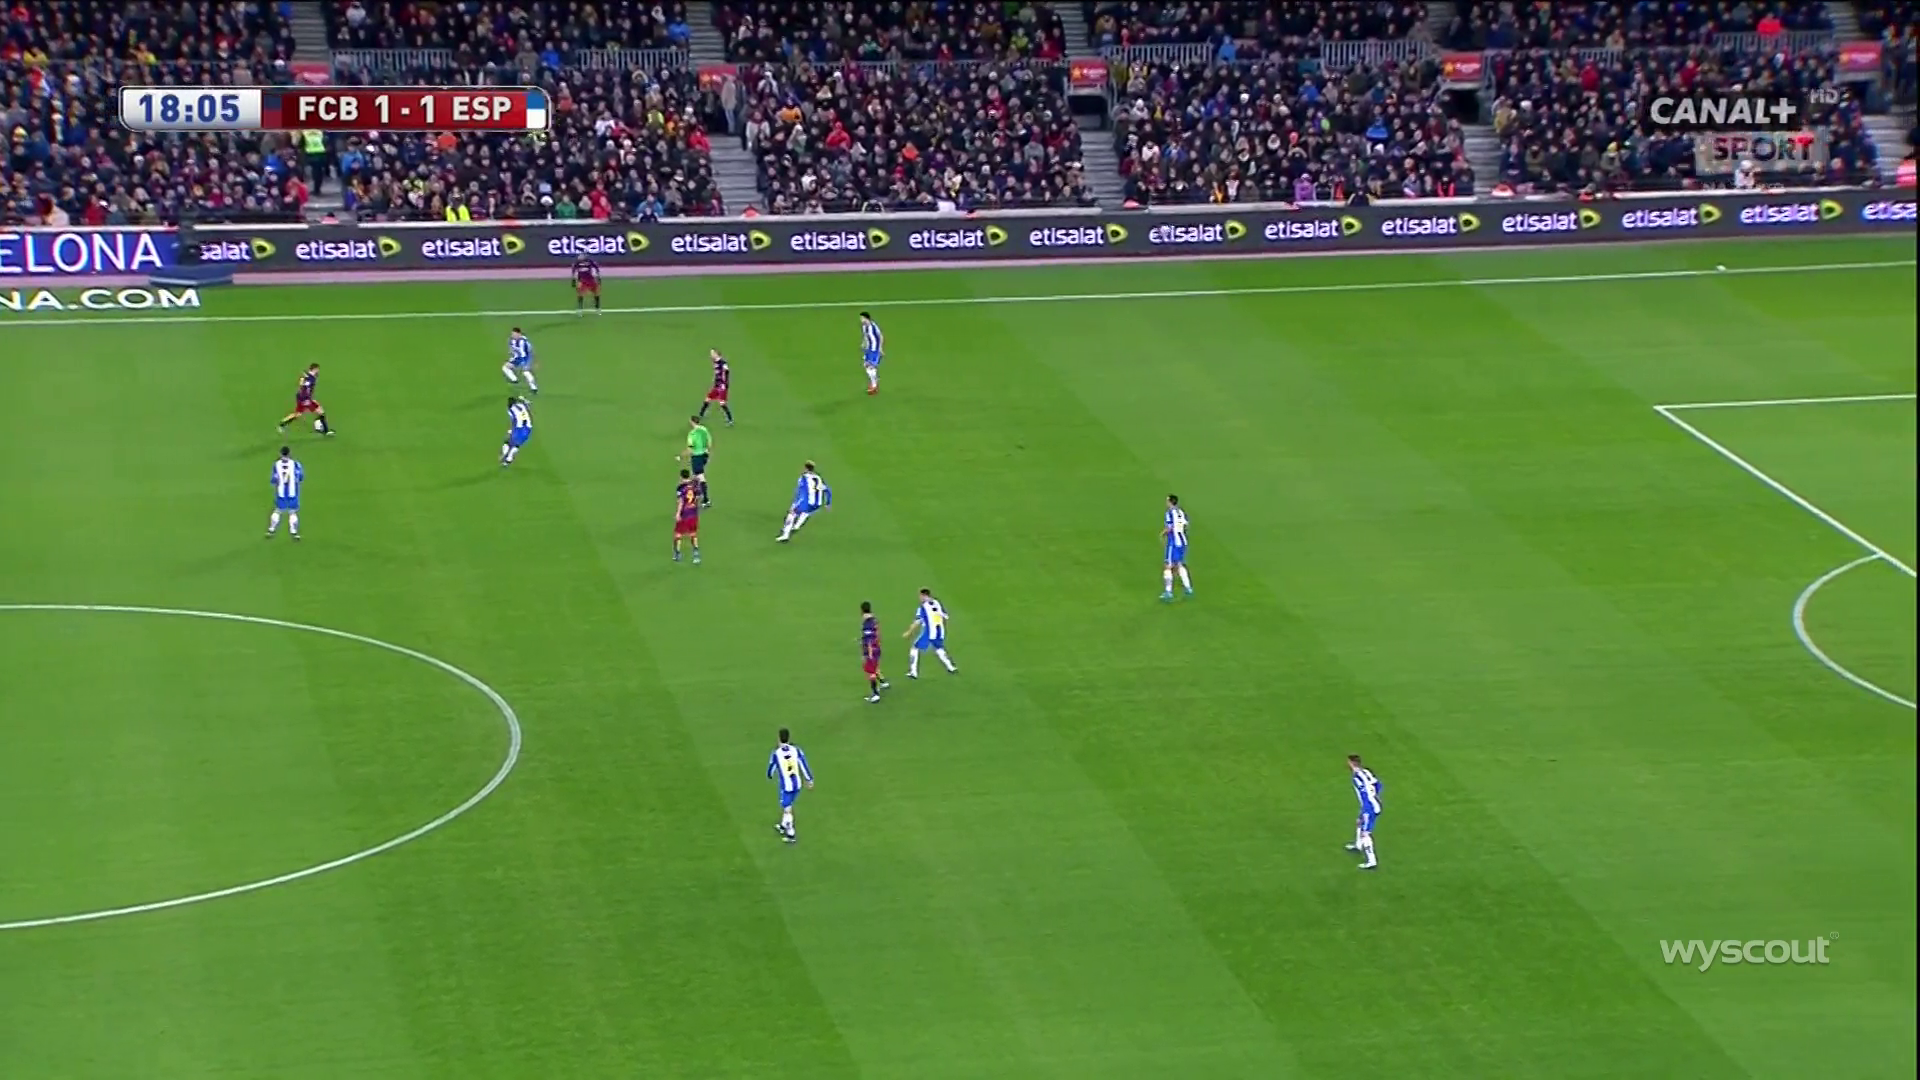 Iniesta was easily found between the lines.